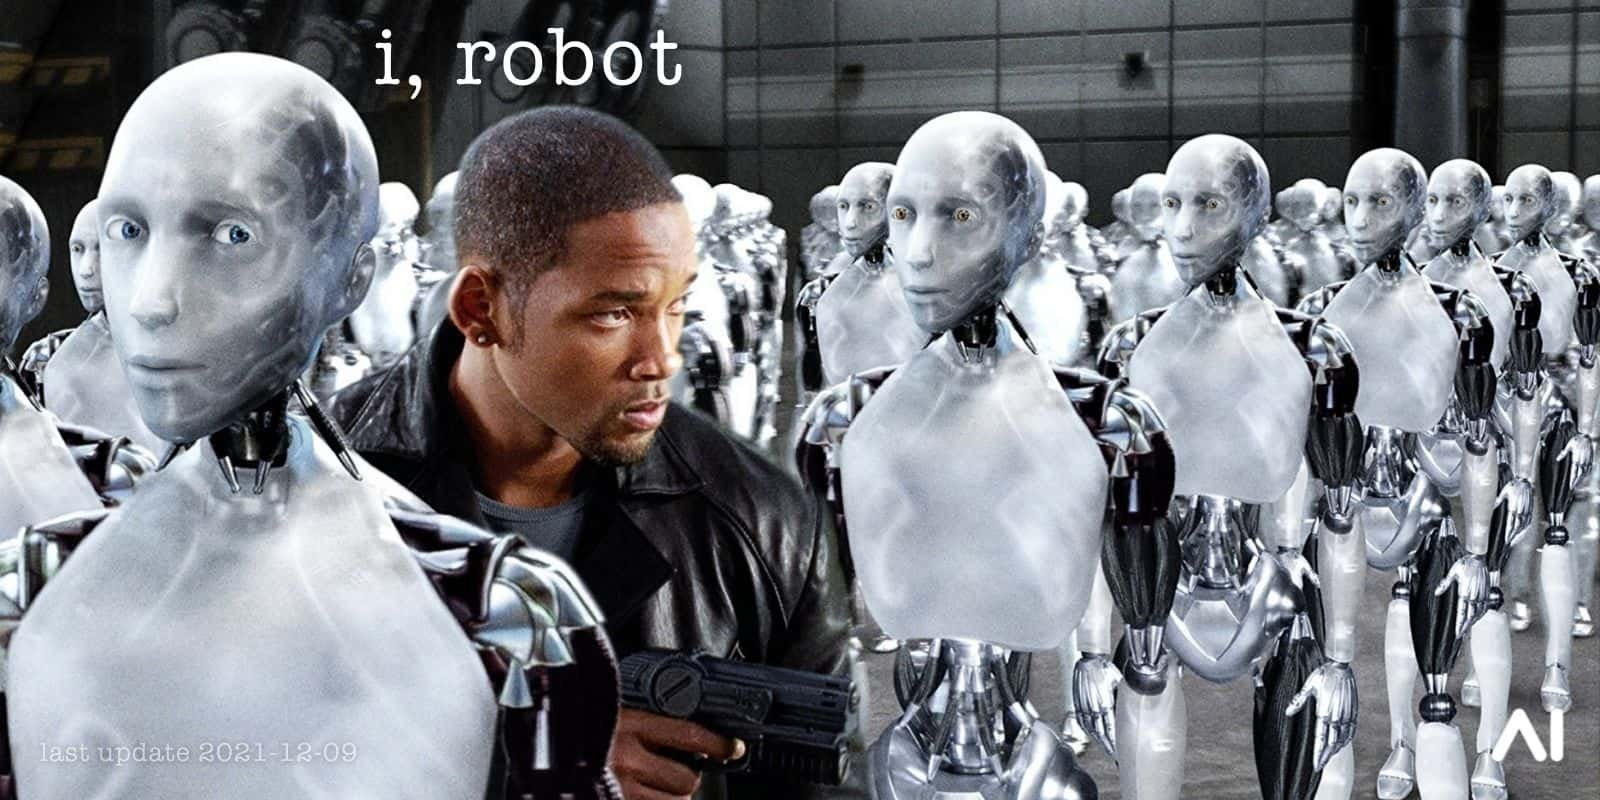 I Robot I Robot 2004 Ai Robot Movie Artificial Intelligence